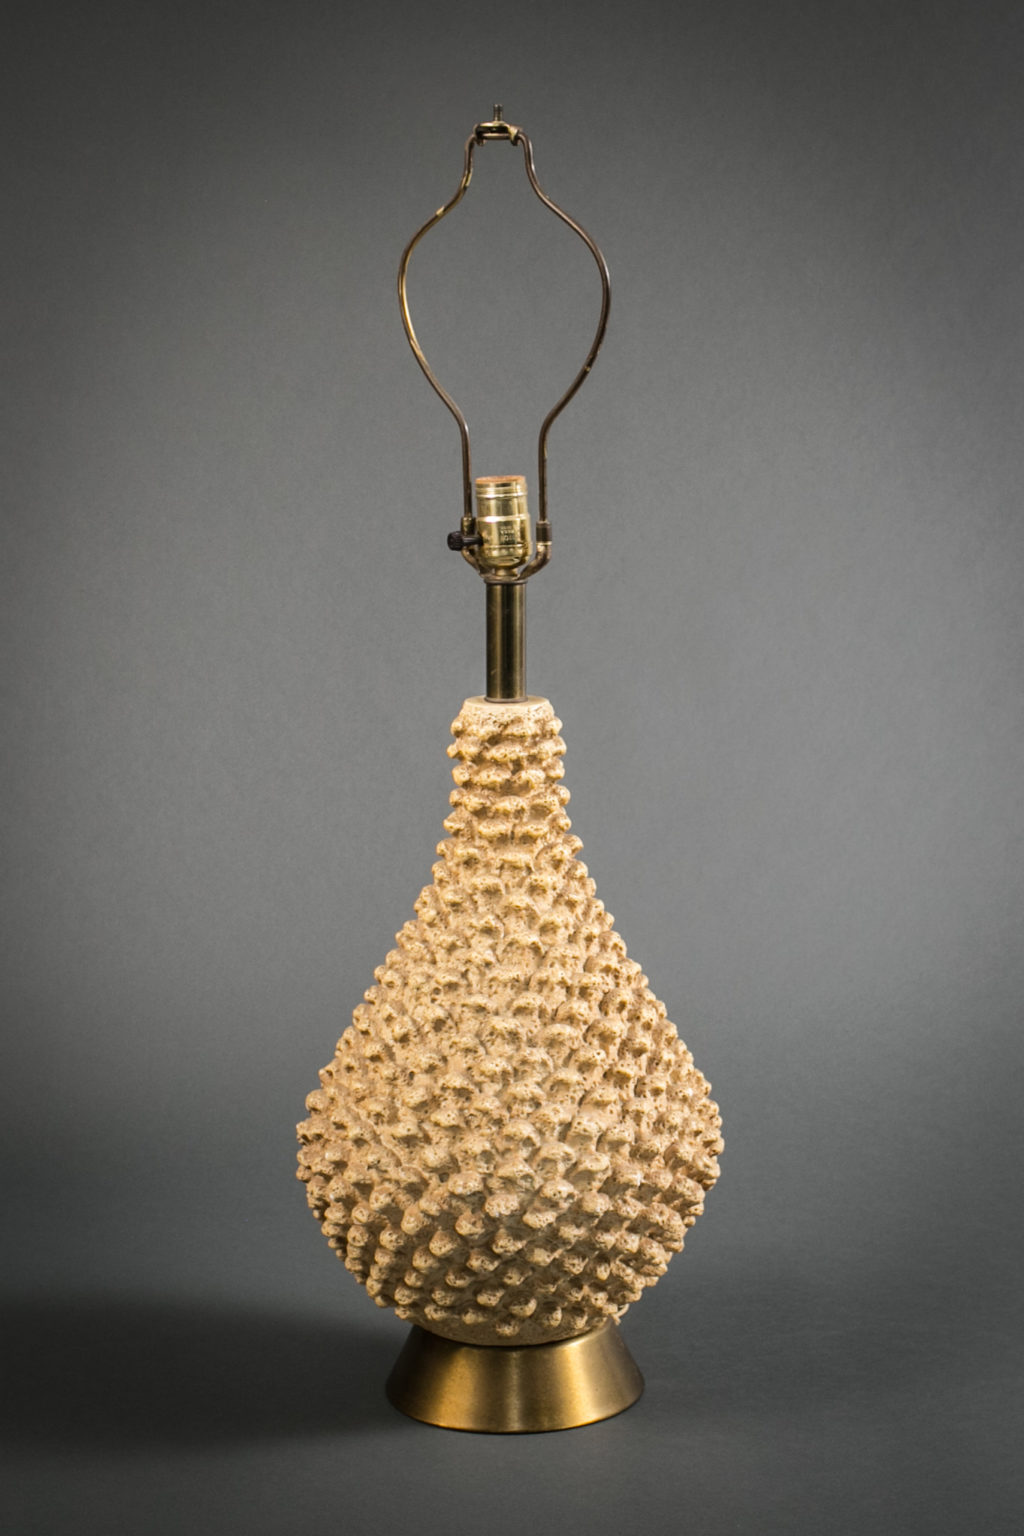 Single American Pineapple Shaped Lamp